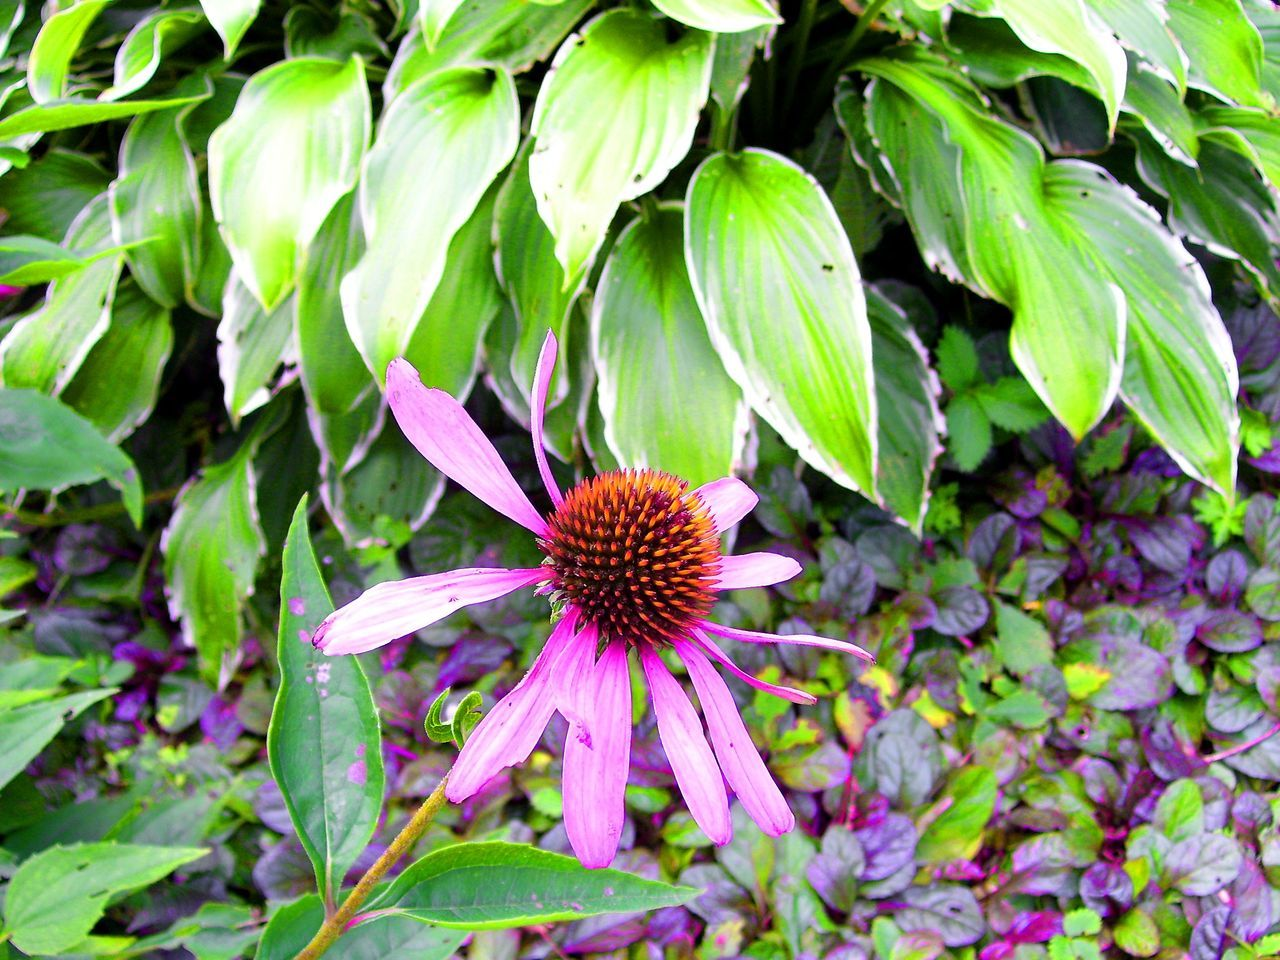 Beauty In Nature Blooming Close-up Cone Flower Day Eastern Purple Coneflower Echinacea Echinacea Flower Echinacea Purpurea Flower Flower Head Fragility Freshness Green Color Growth Herbal Herbal Medicine Herbal Remedy Leaf Nature No People Outdoors Petal Plant